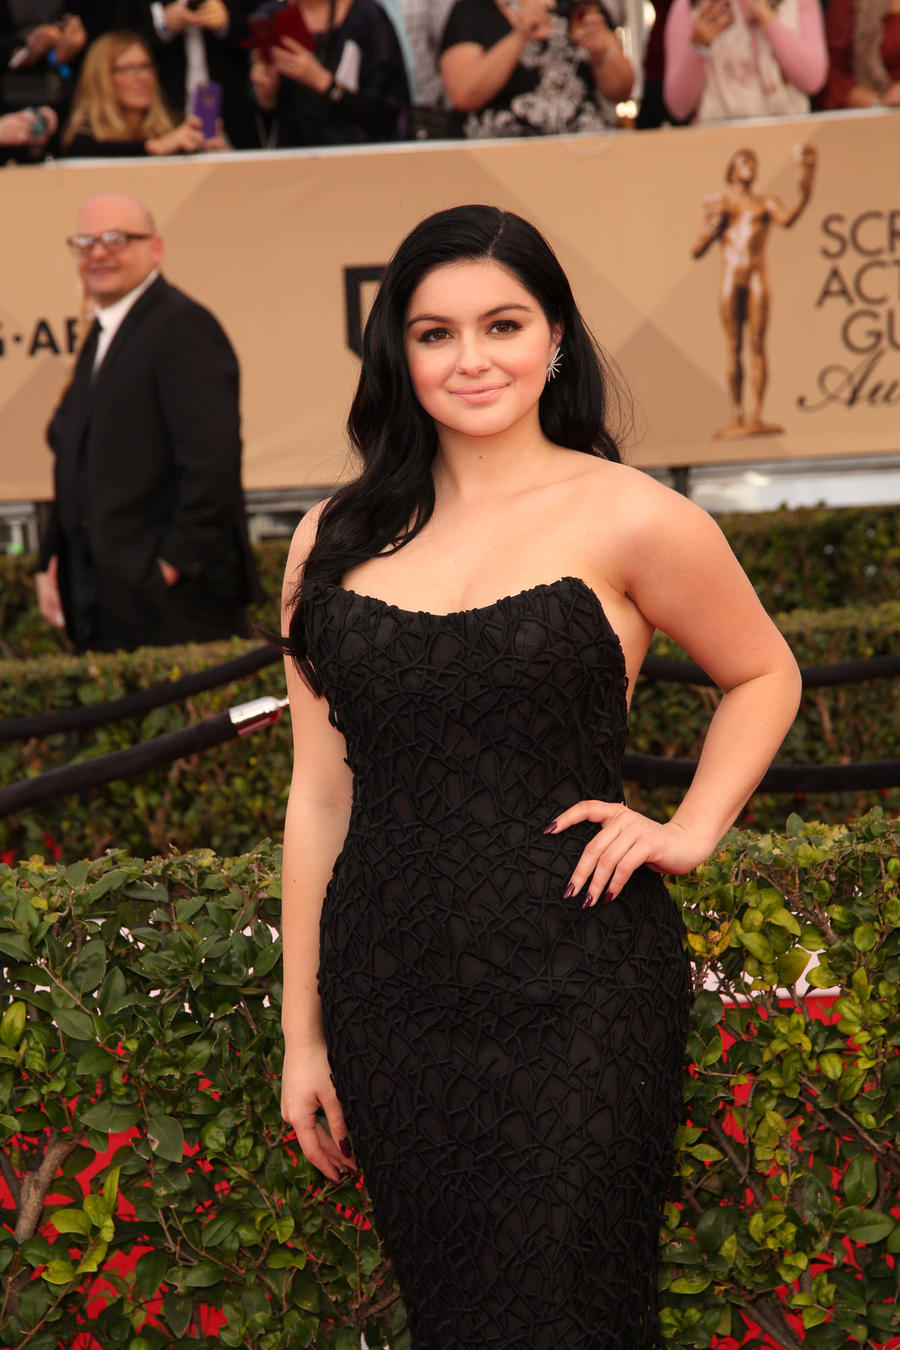 Ariel Winter: 'I Am Not Ashamed Of My Surgery Scars'